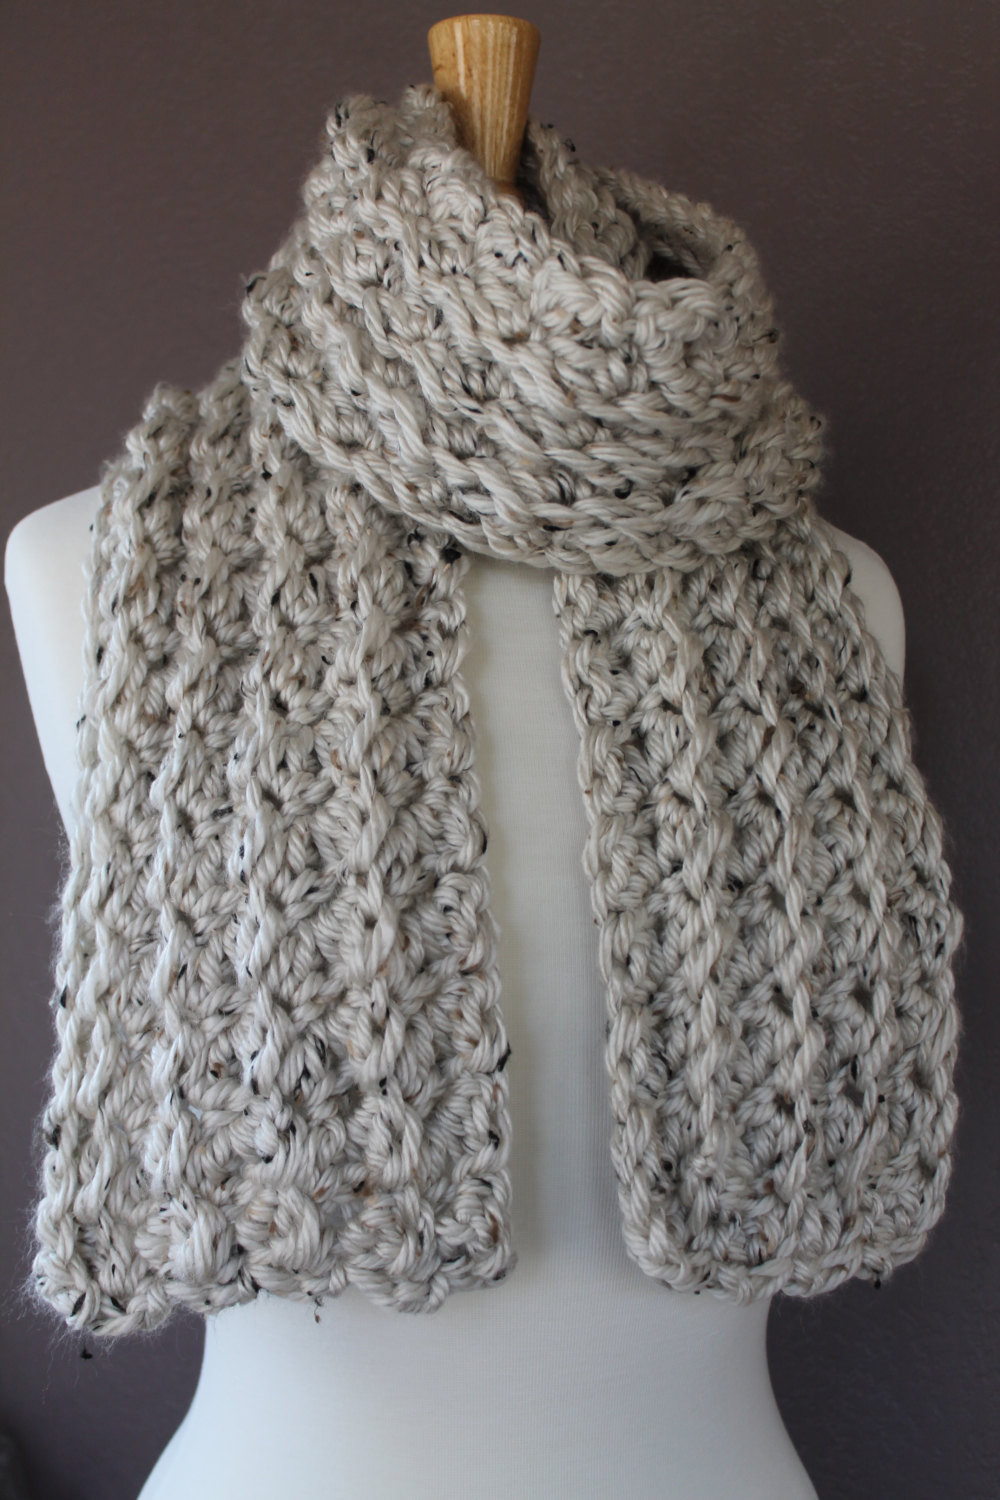 Best Of Chunky Crochet Scarf Pattern Crafty Mn Mom Crochet Scarves Of Amazing 43 Photos Crochet Scarves